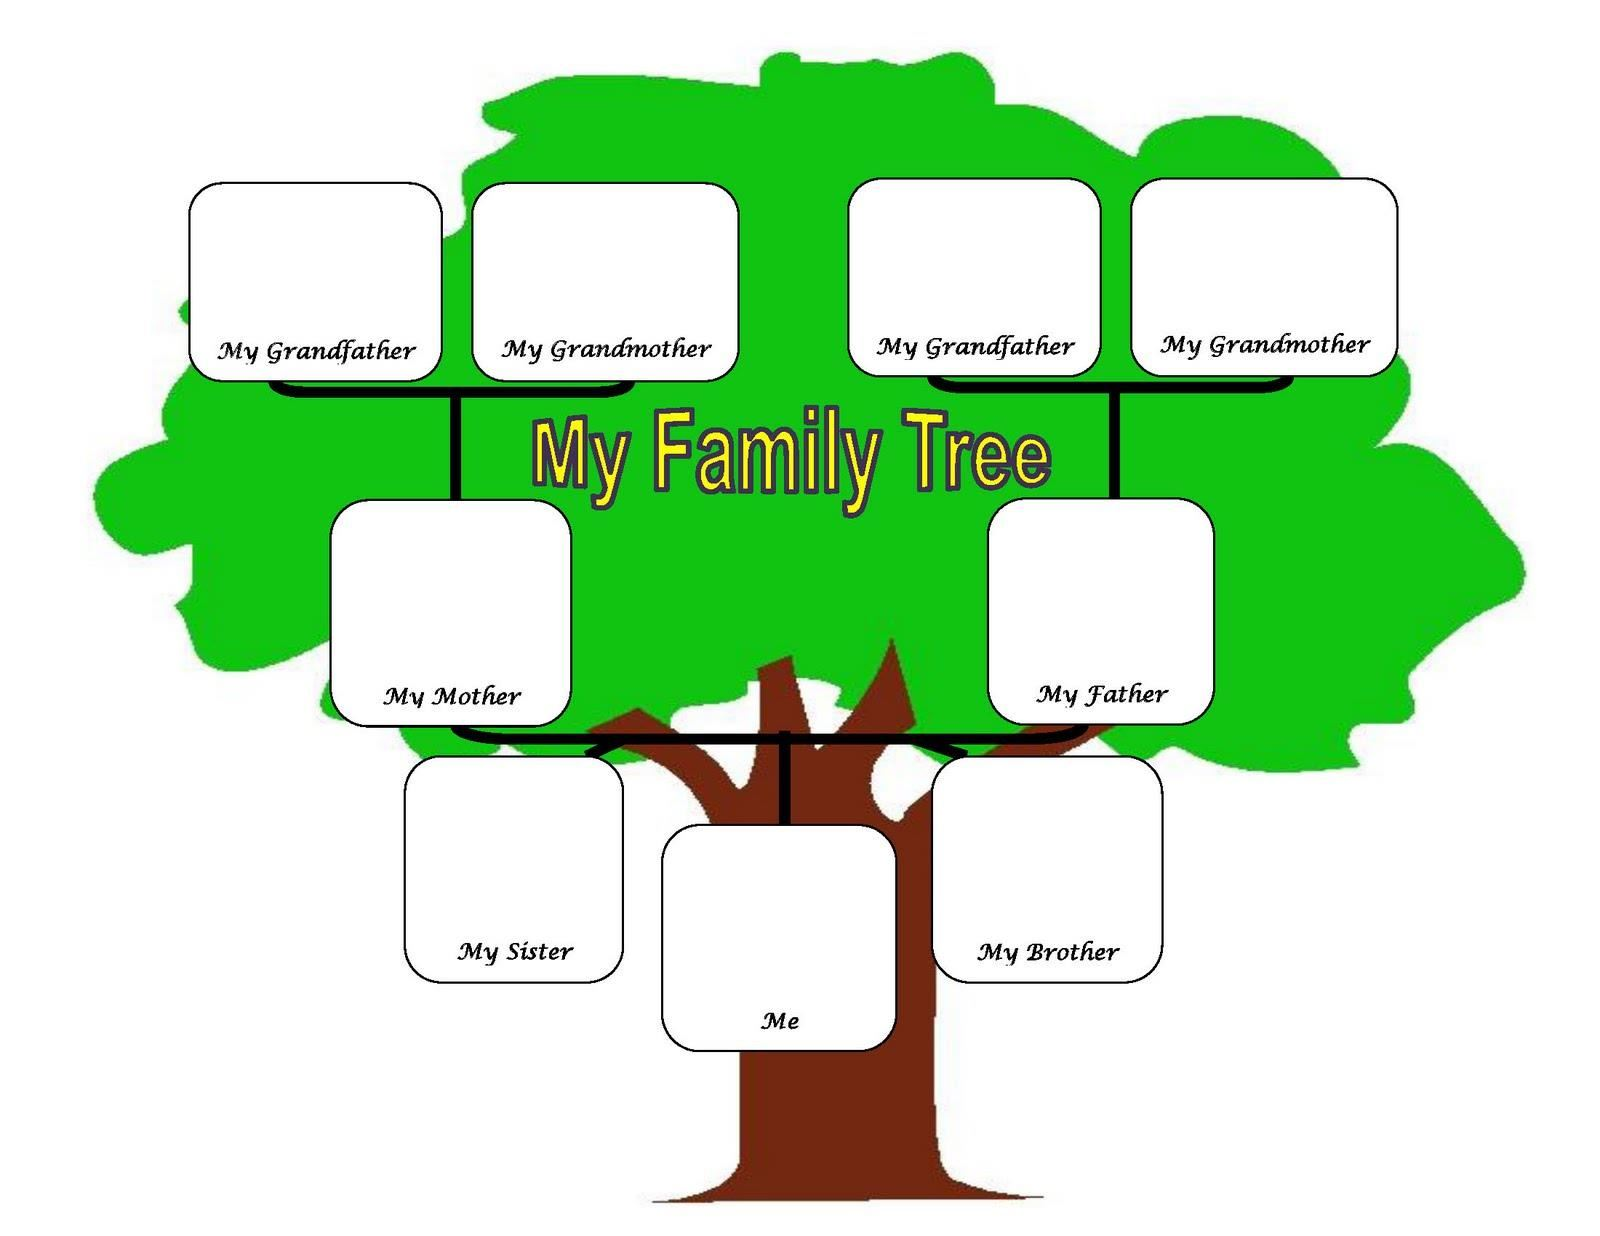 blank family tree template for kids - family tree rich image and wallpaper